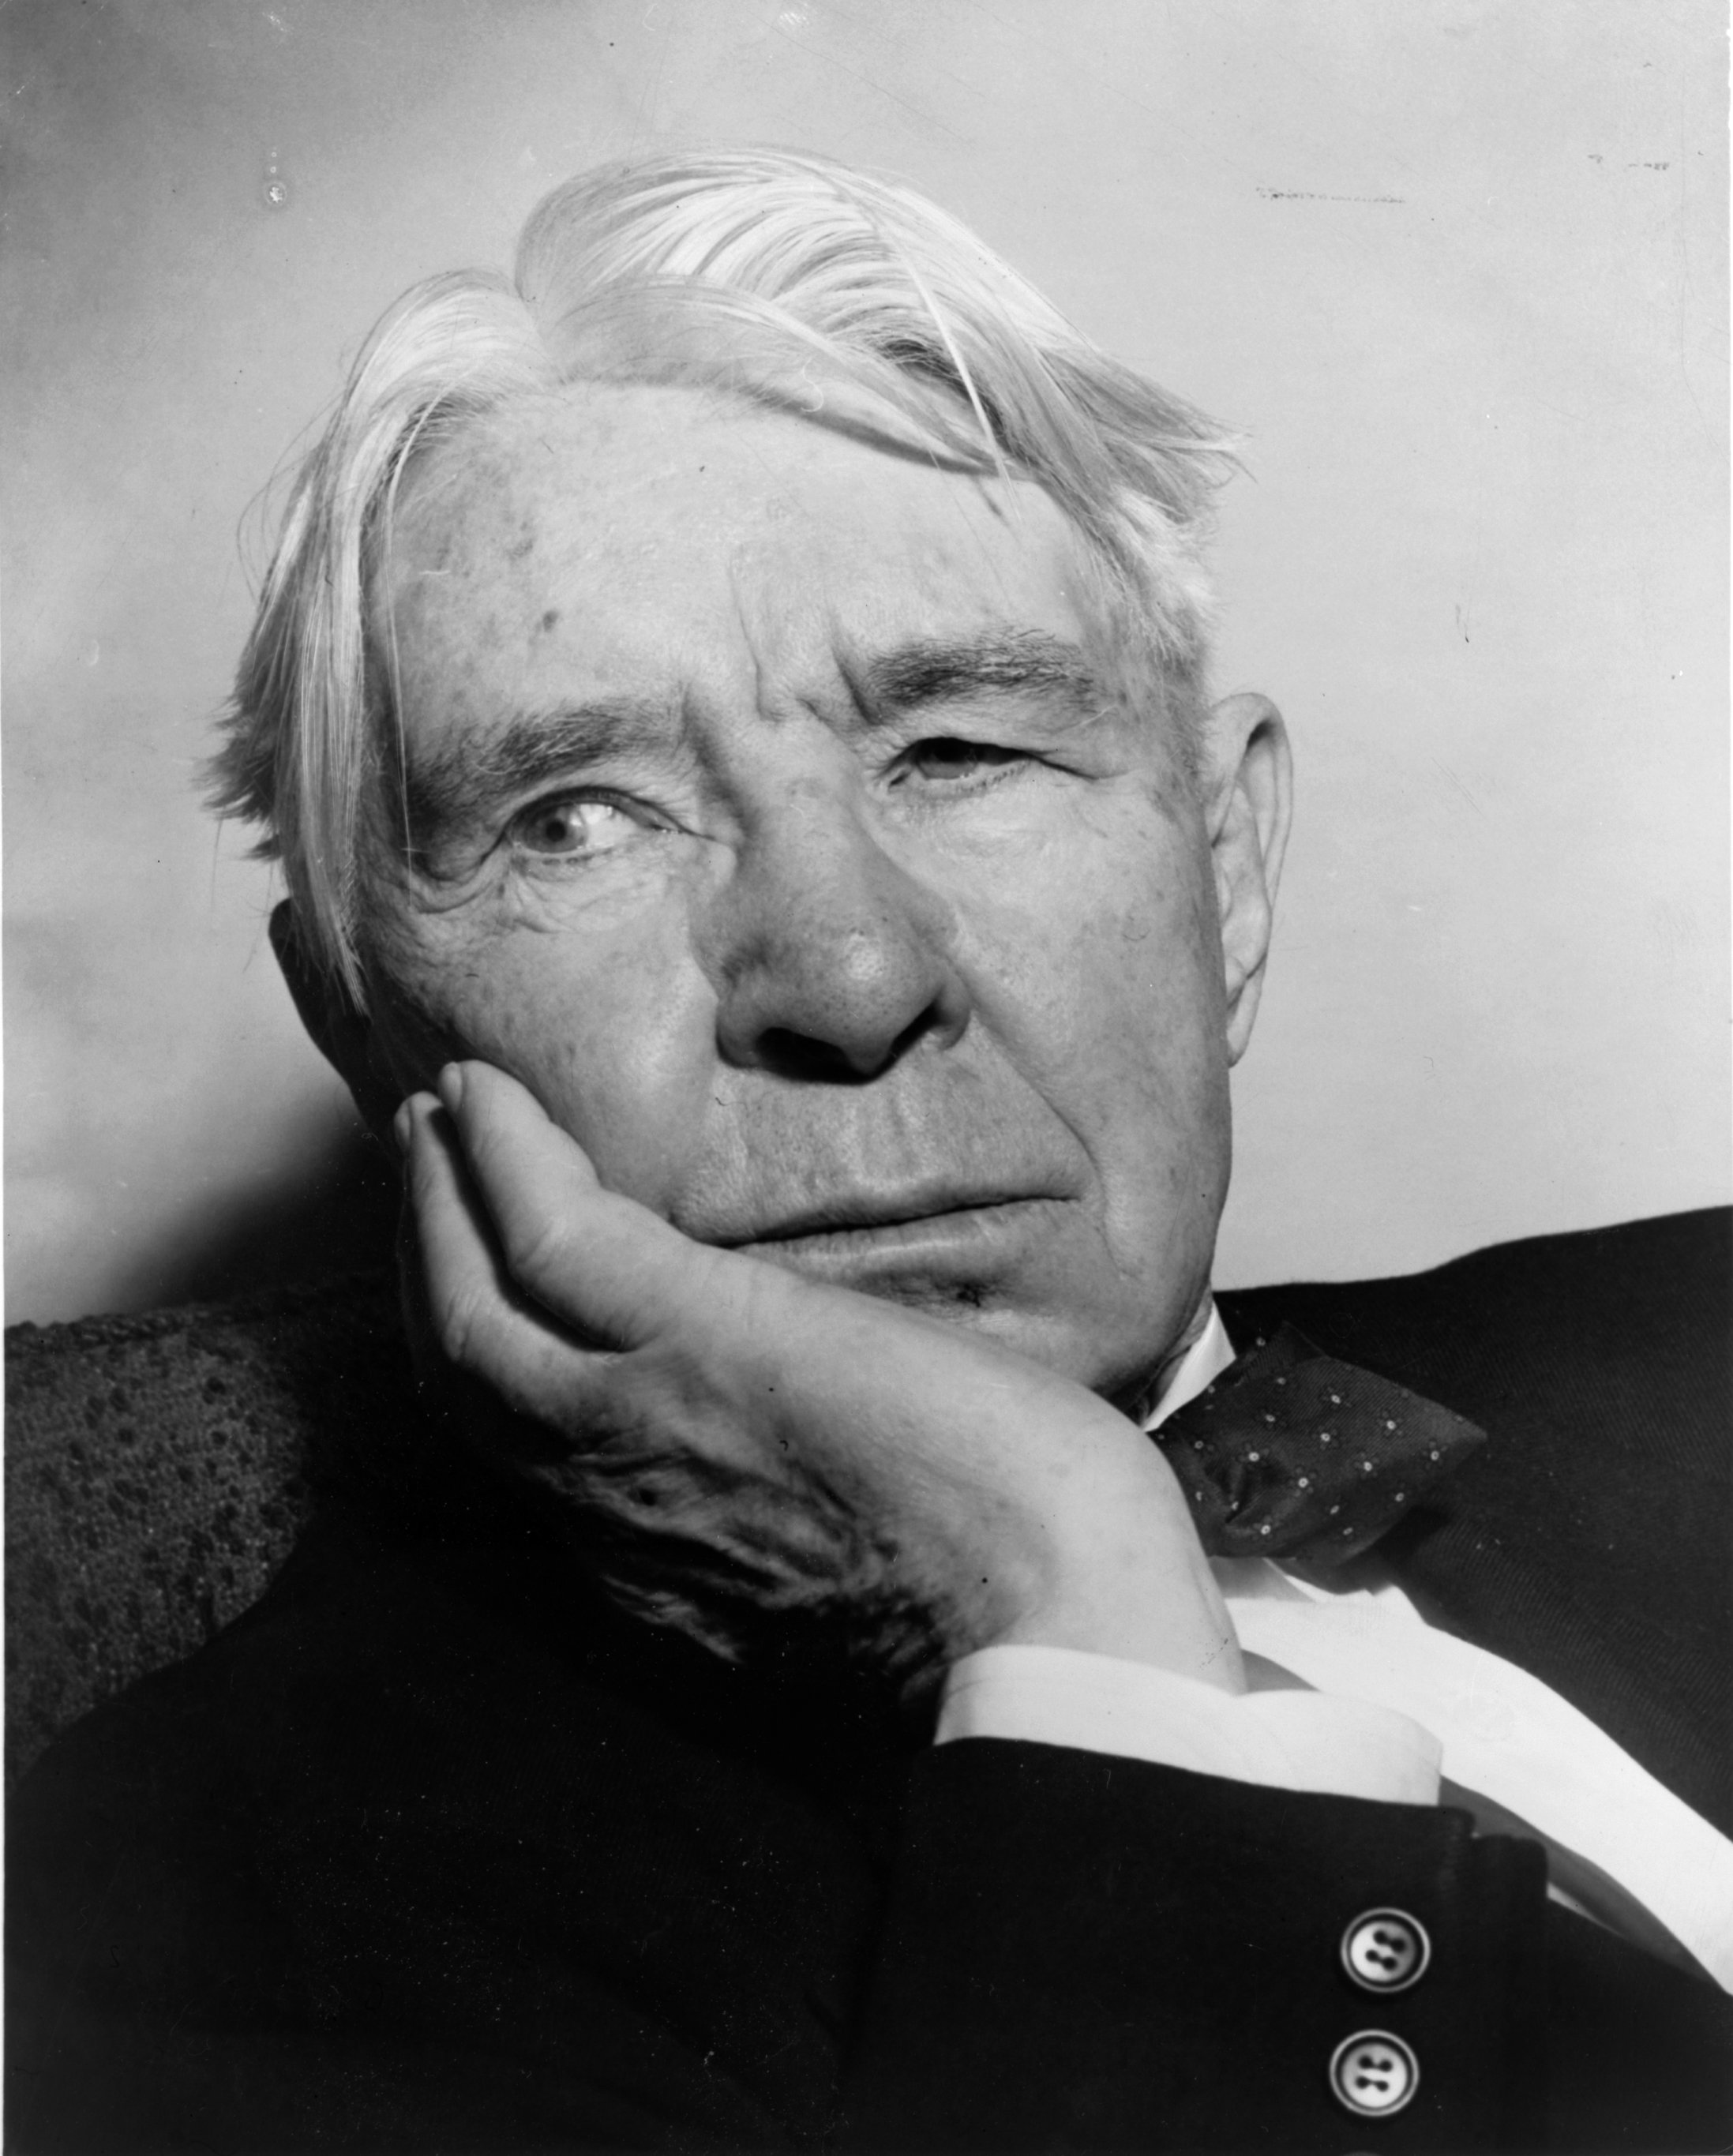 an analysis of carl sandburgs writing style and his poem jaws The style of sandburg helps bring out the meaning of his work by analyzing the different elements of carl sandburg s style, i am reading and understanding his poem in the poem jazz fantasia , carl sandburg uses sound devices, imagery, and personification, to put his message out their saying that music is apart of freedom to express another s.